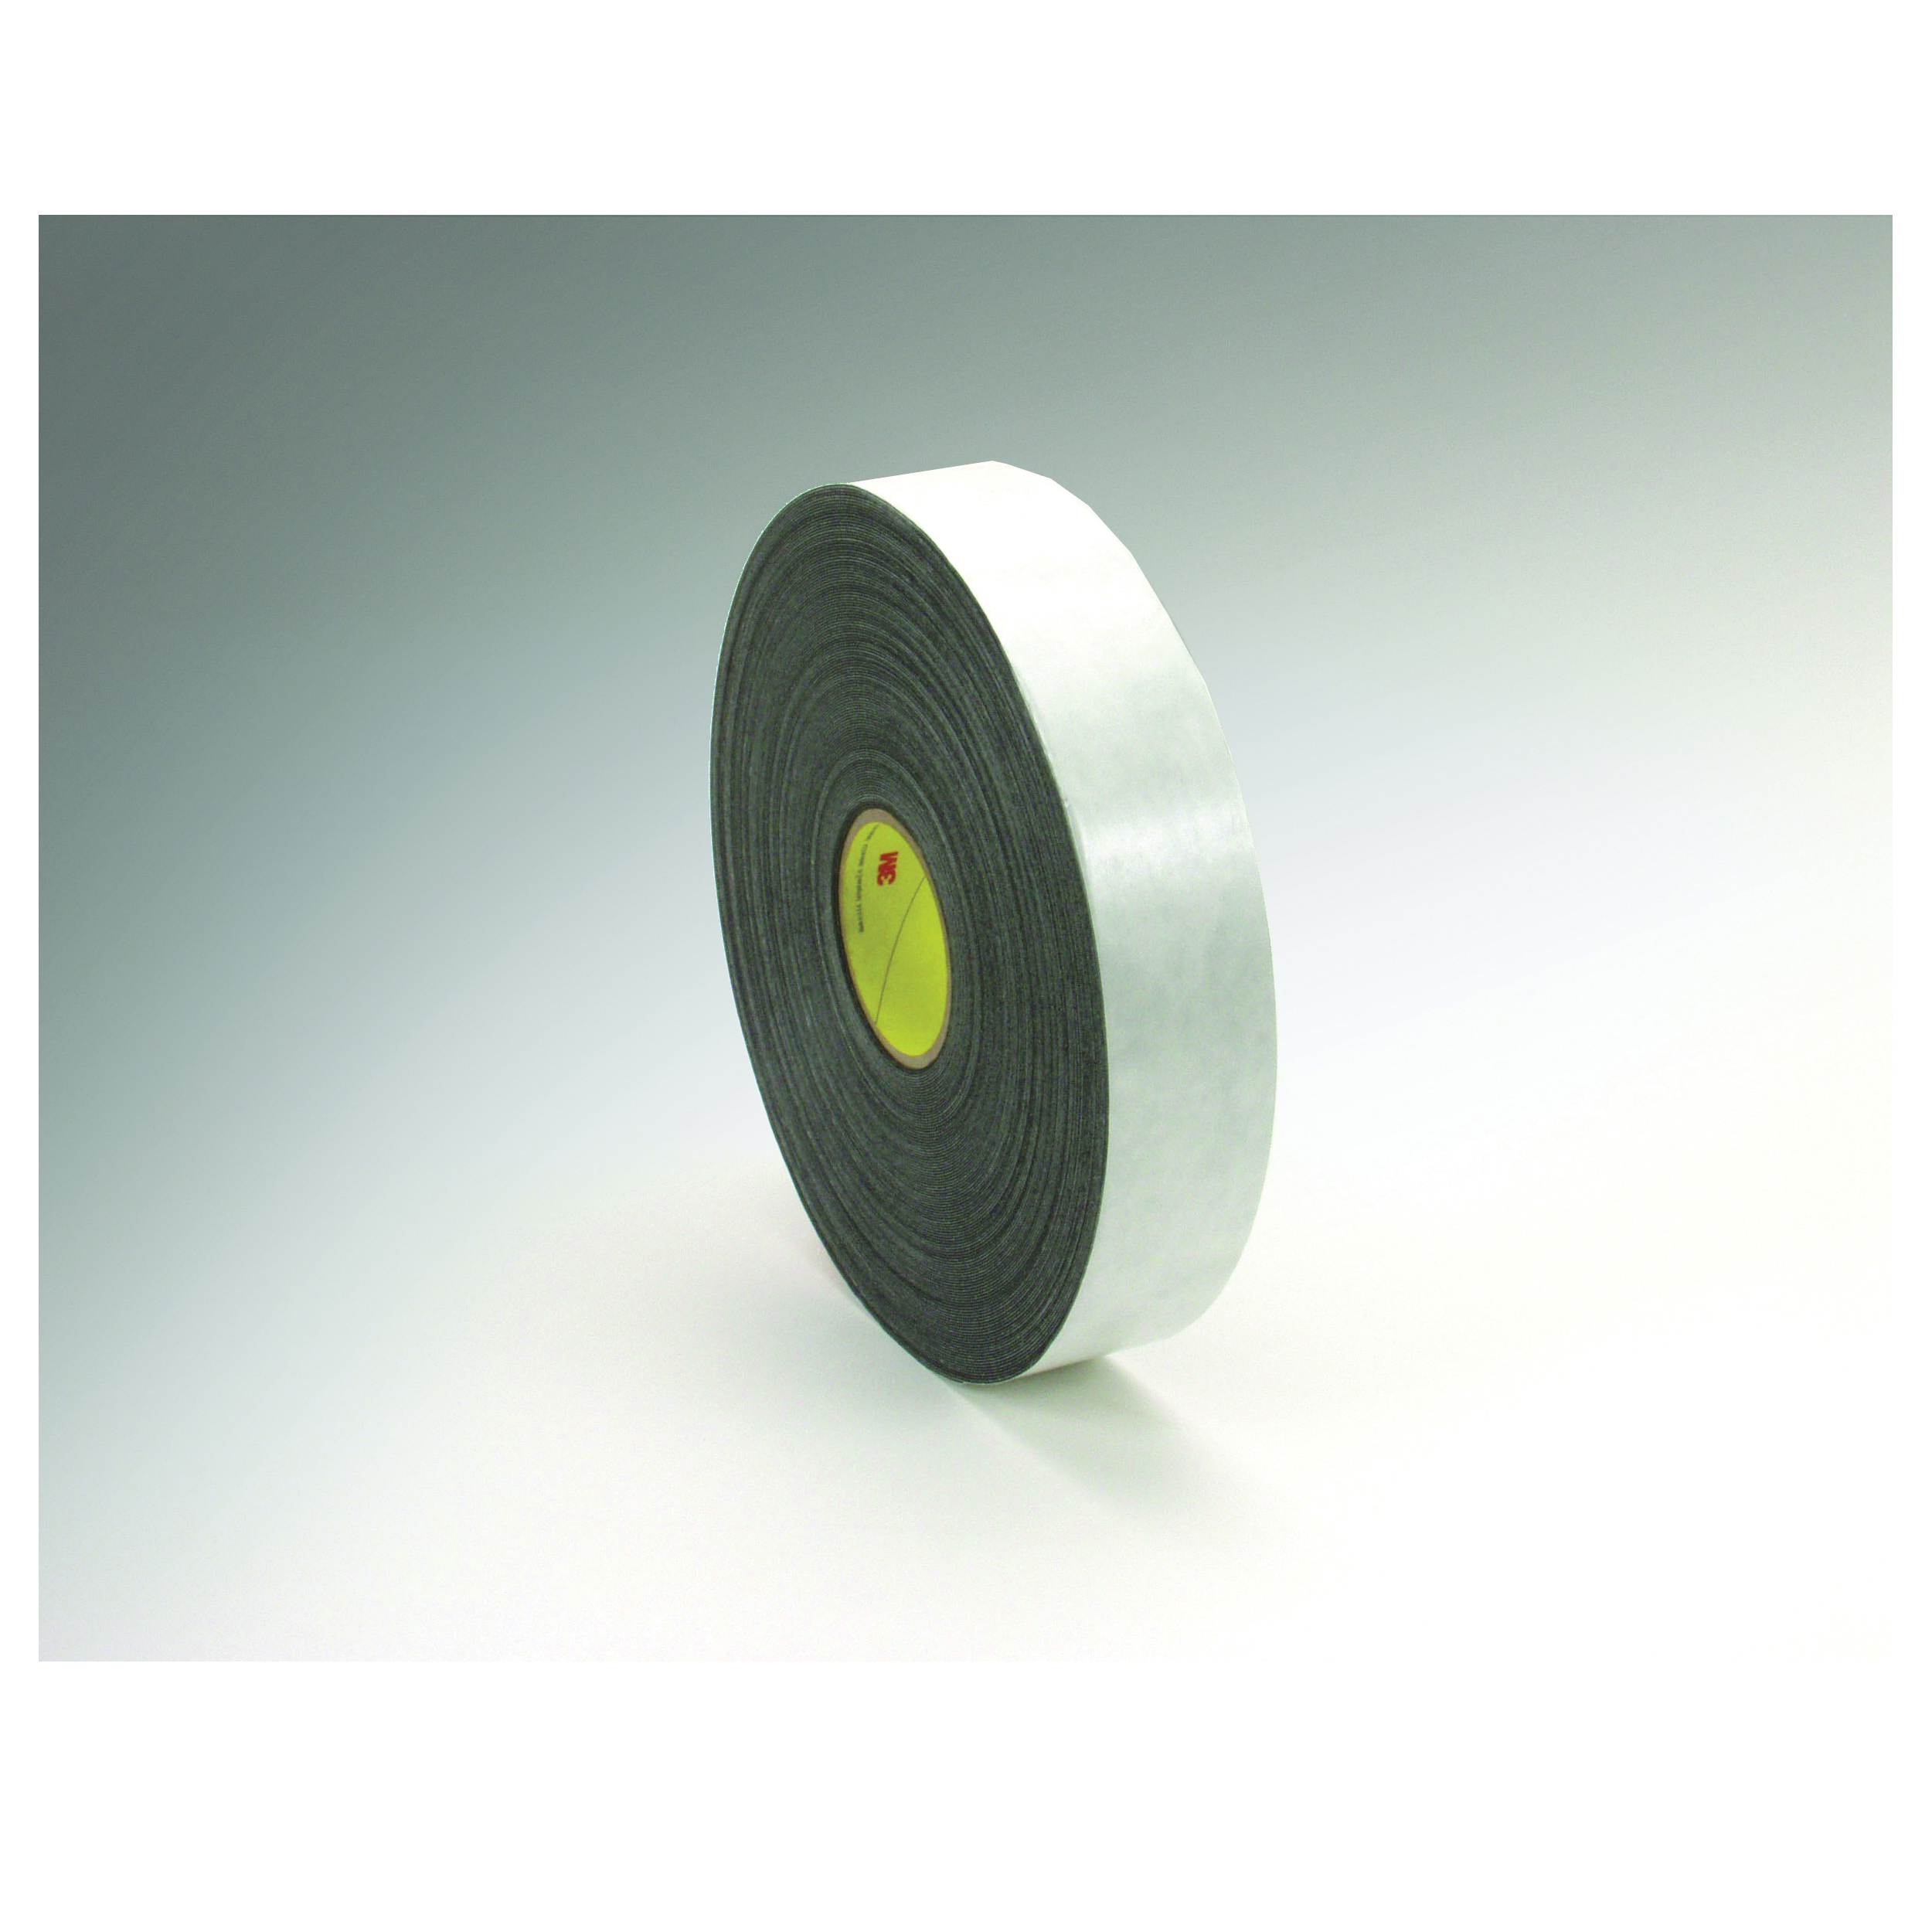 3M™ 021200-30415 Double Coated Tape, 72 yd L x 3/4 in W, 31 mil THK, Rubber Adhesive, Polyethylene Foam Backing, Black